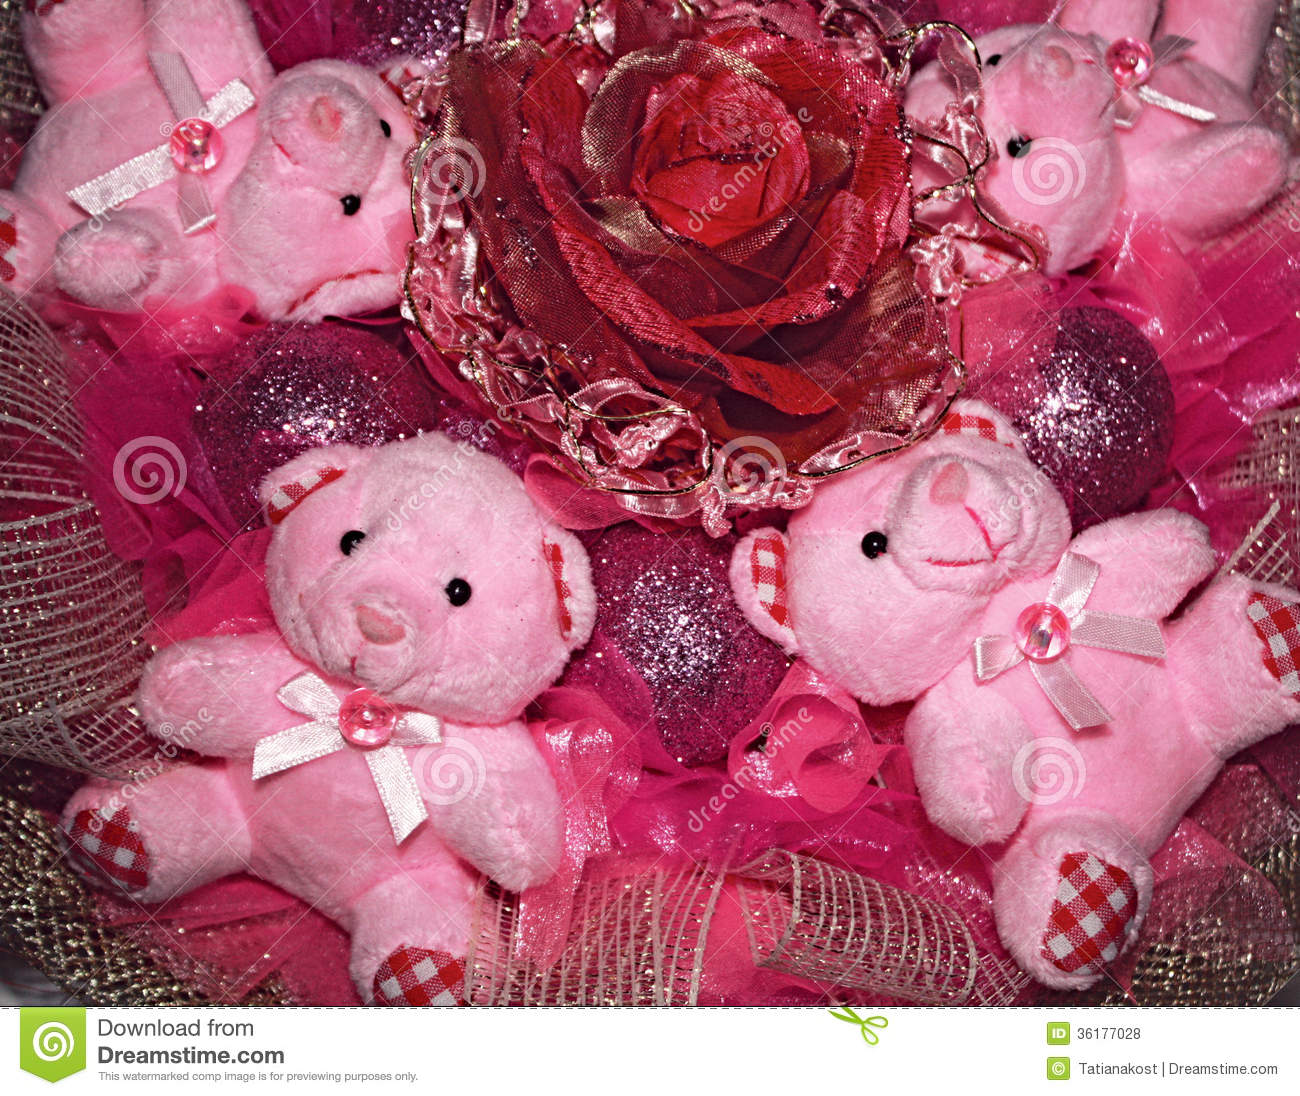 Four pink teddy bears and artificial flowerristmas compositio four pink teddy bears and artificial flowerristmas compositio altavistaventures Image collections